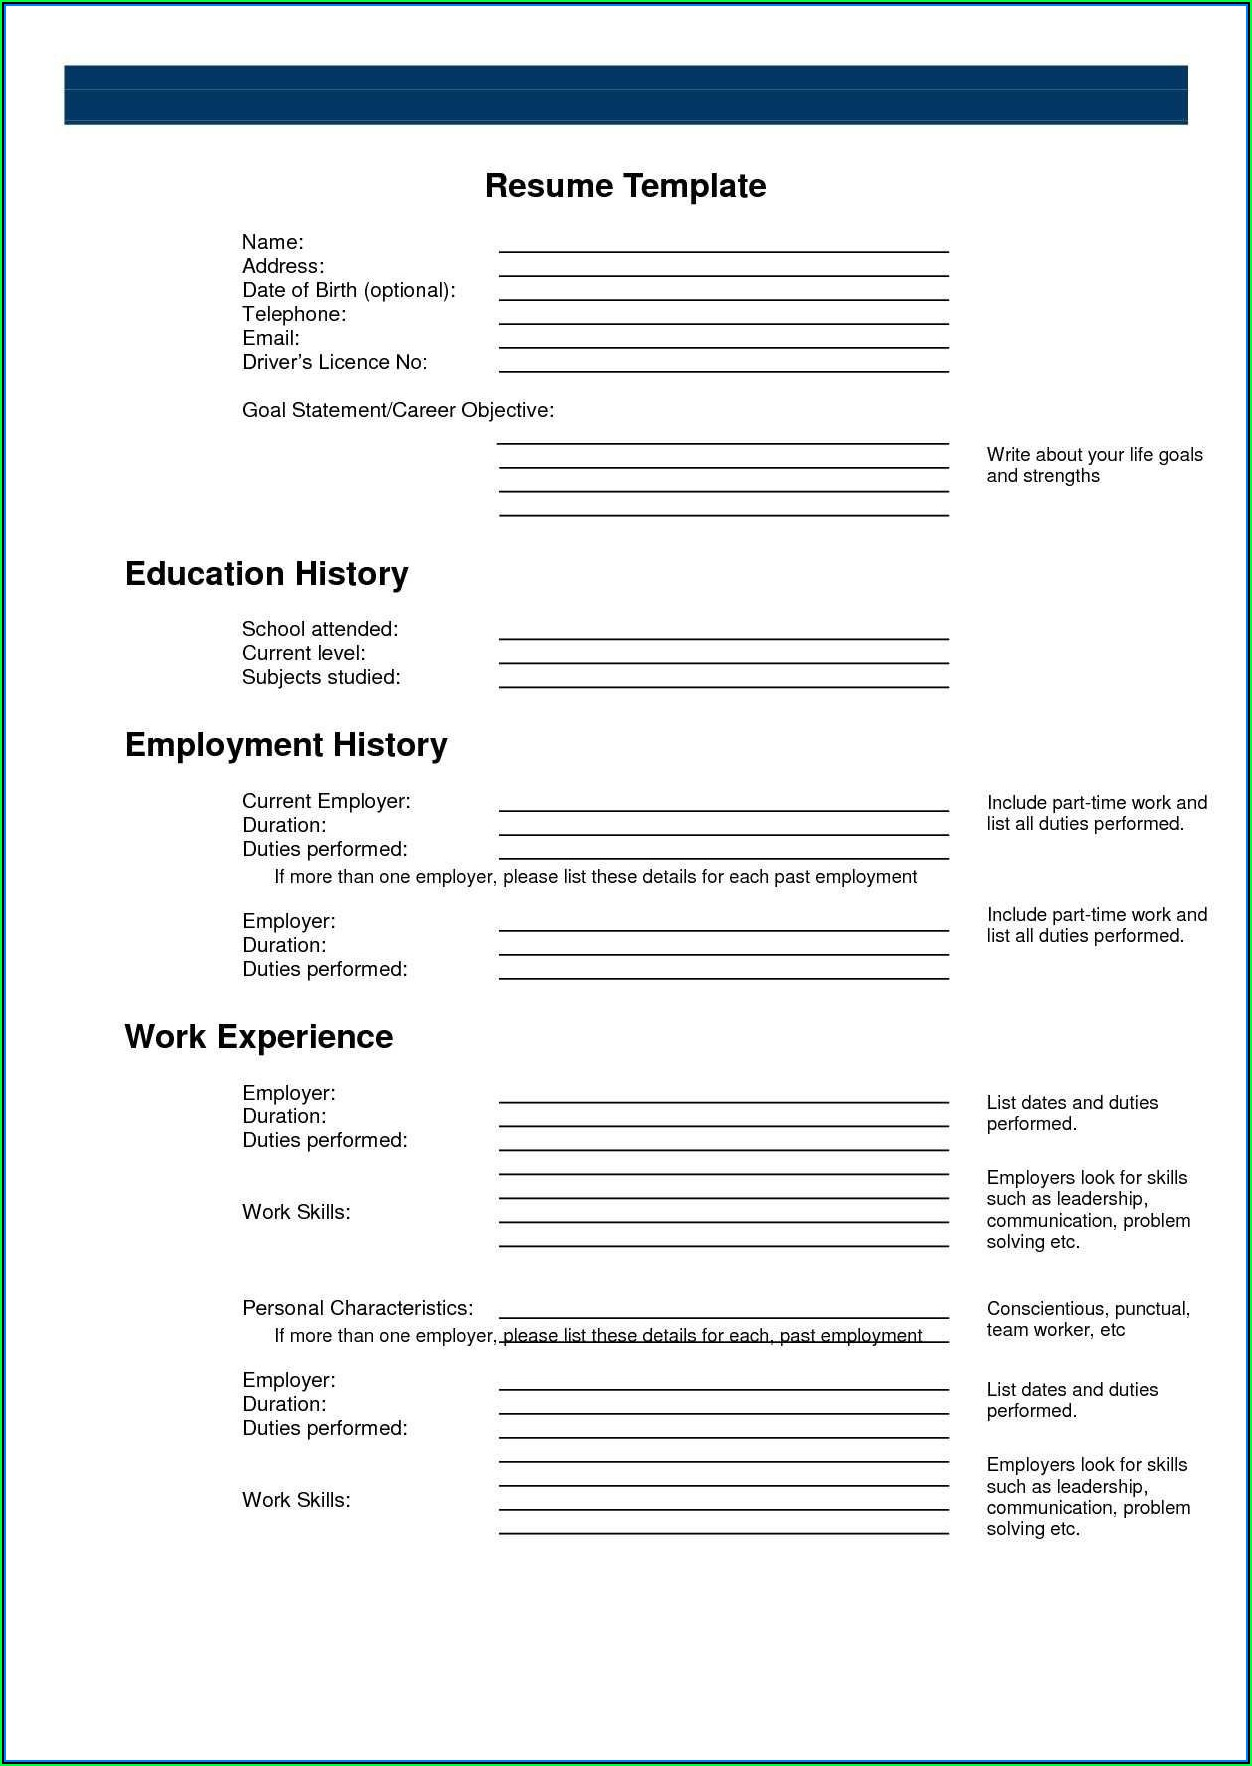 Build A Free Printable Resume Online